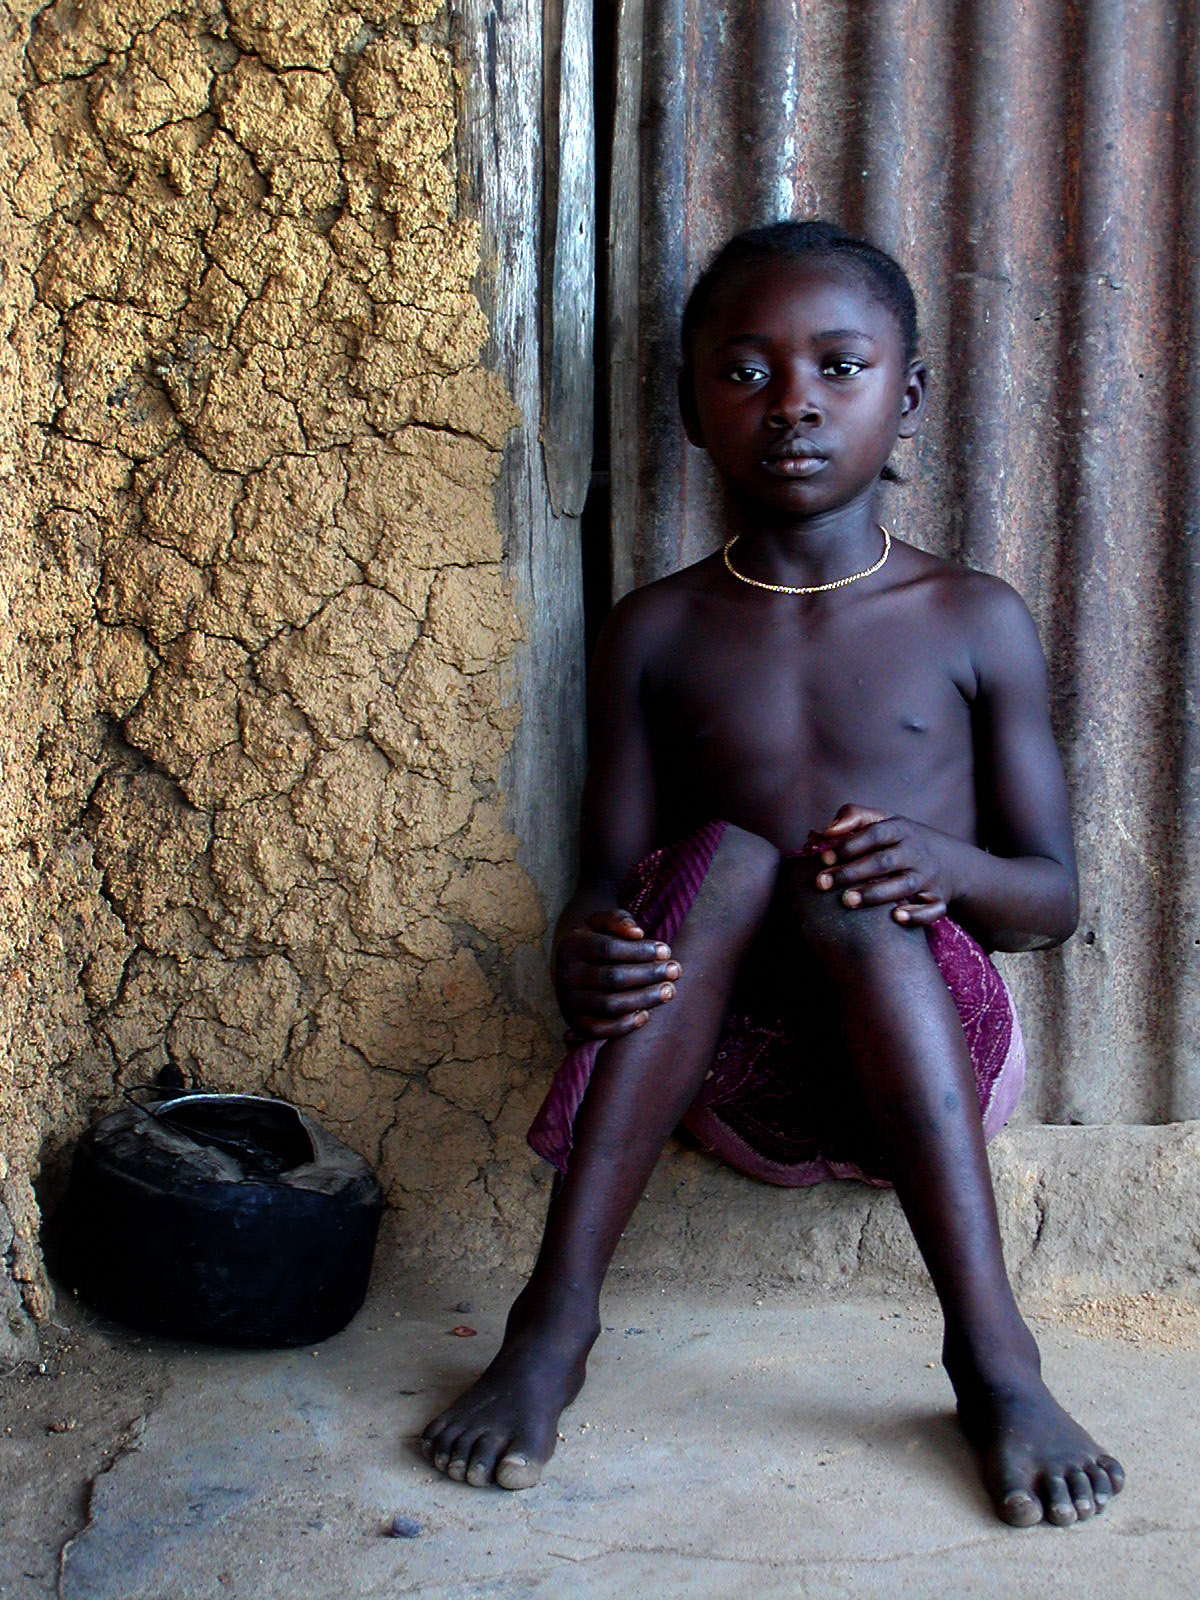 http://www.pahte.com/images/03.03.26_Sierra_leone_Baiama_045.girl_sitting.jpg